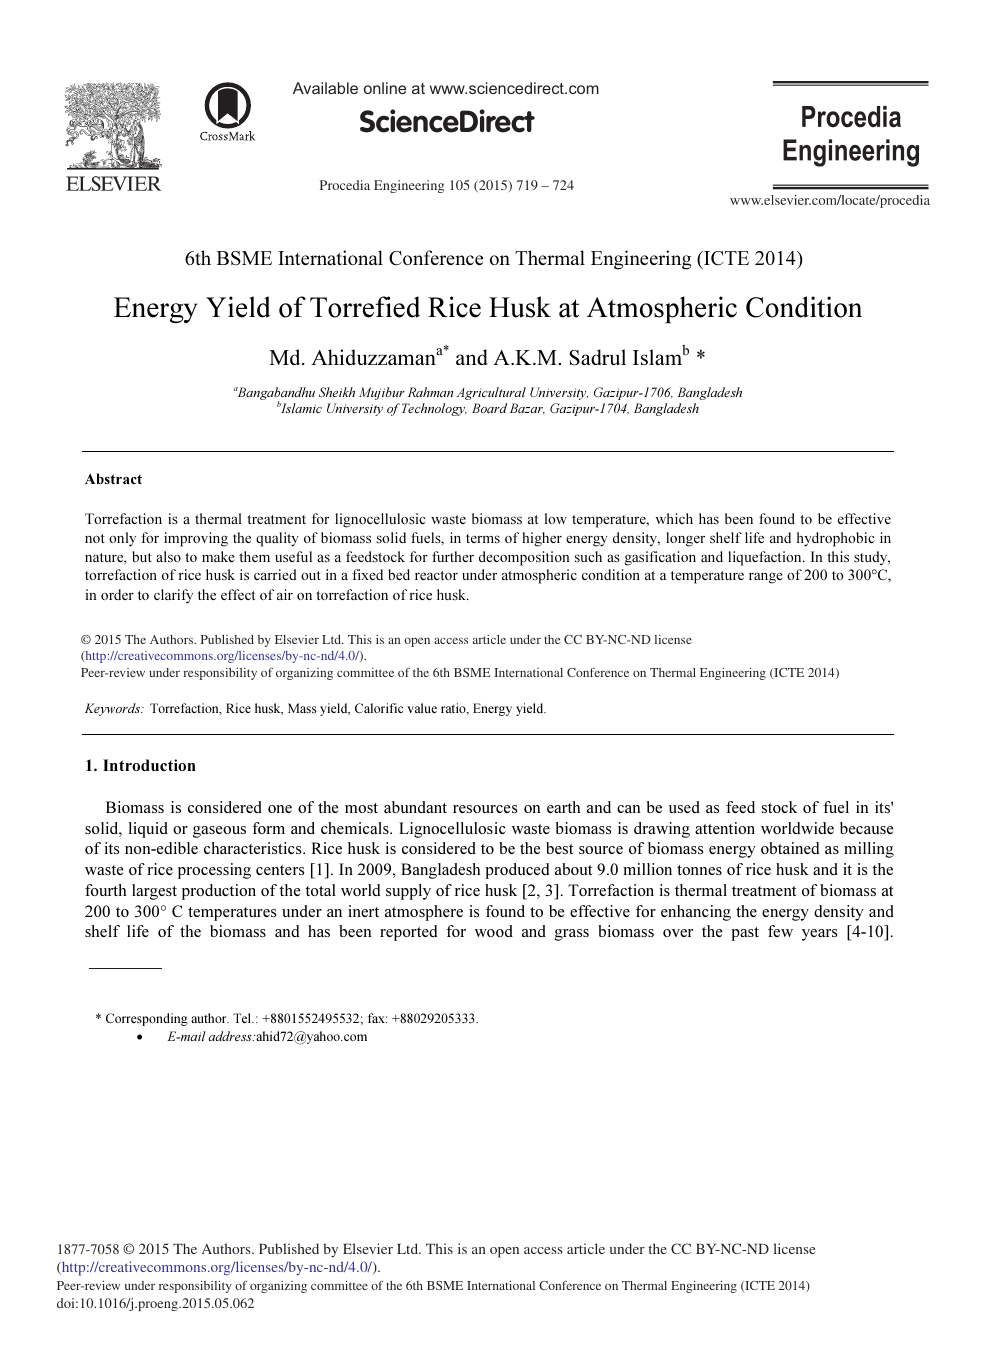 Energy Yield of Torrefied Rice Husk at Atmospheric Condition